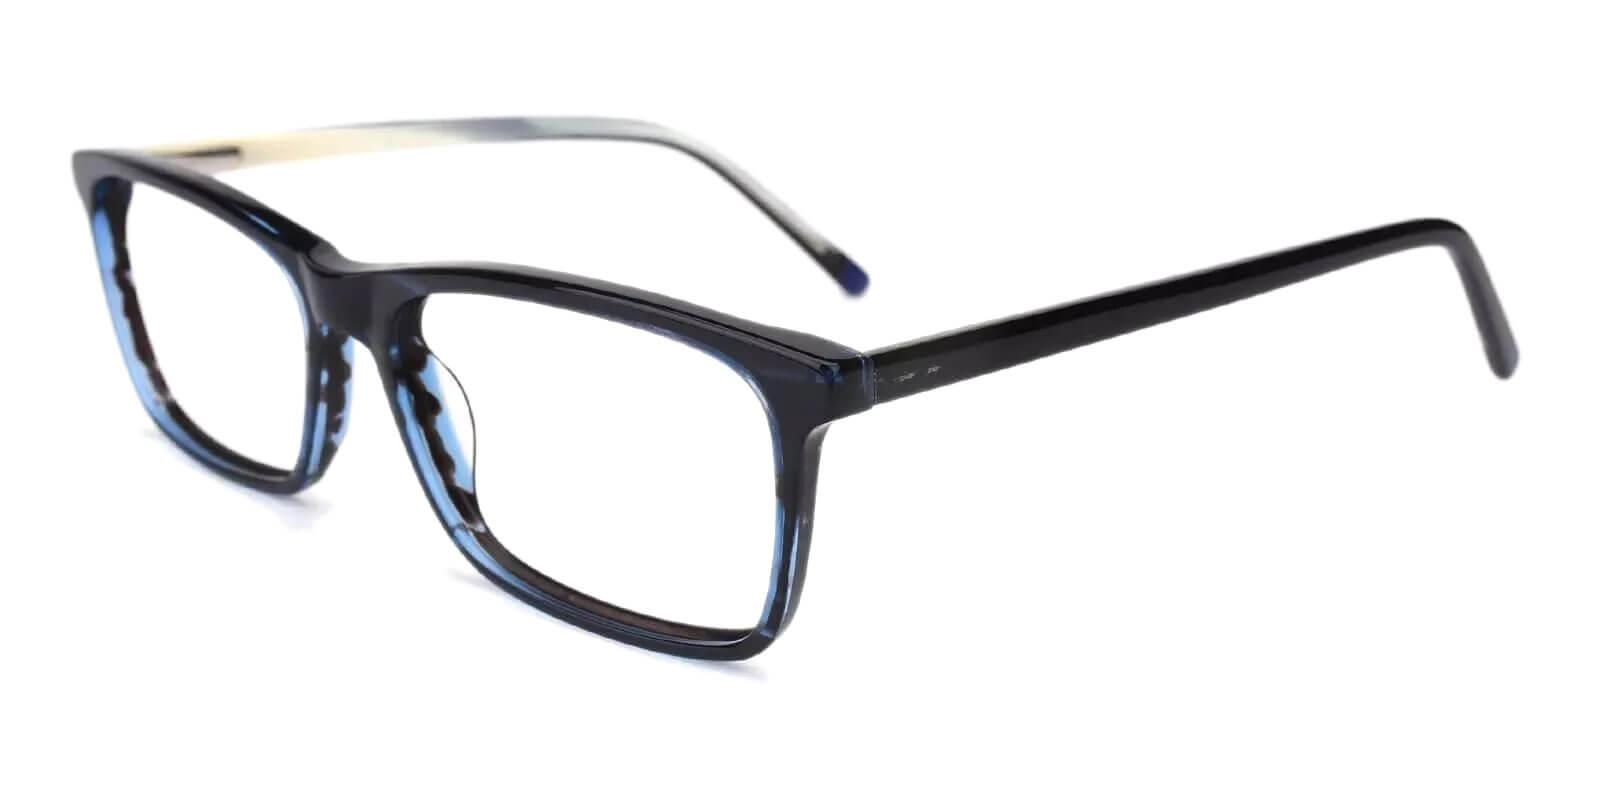 Quasqueton Striped Acetate Eyeglasses , SpringHinges , UniversalBridgeFit Frames from ABBE Glasses